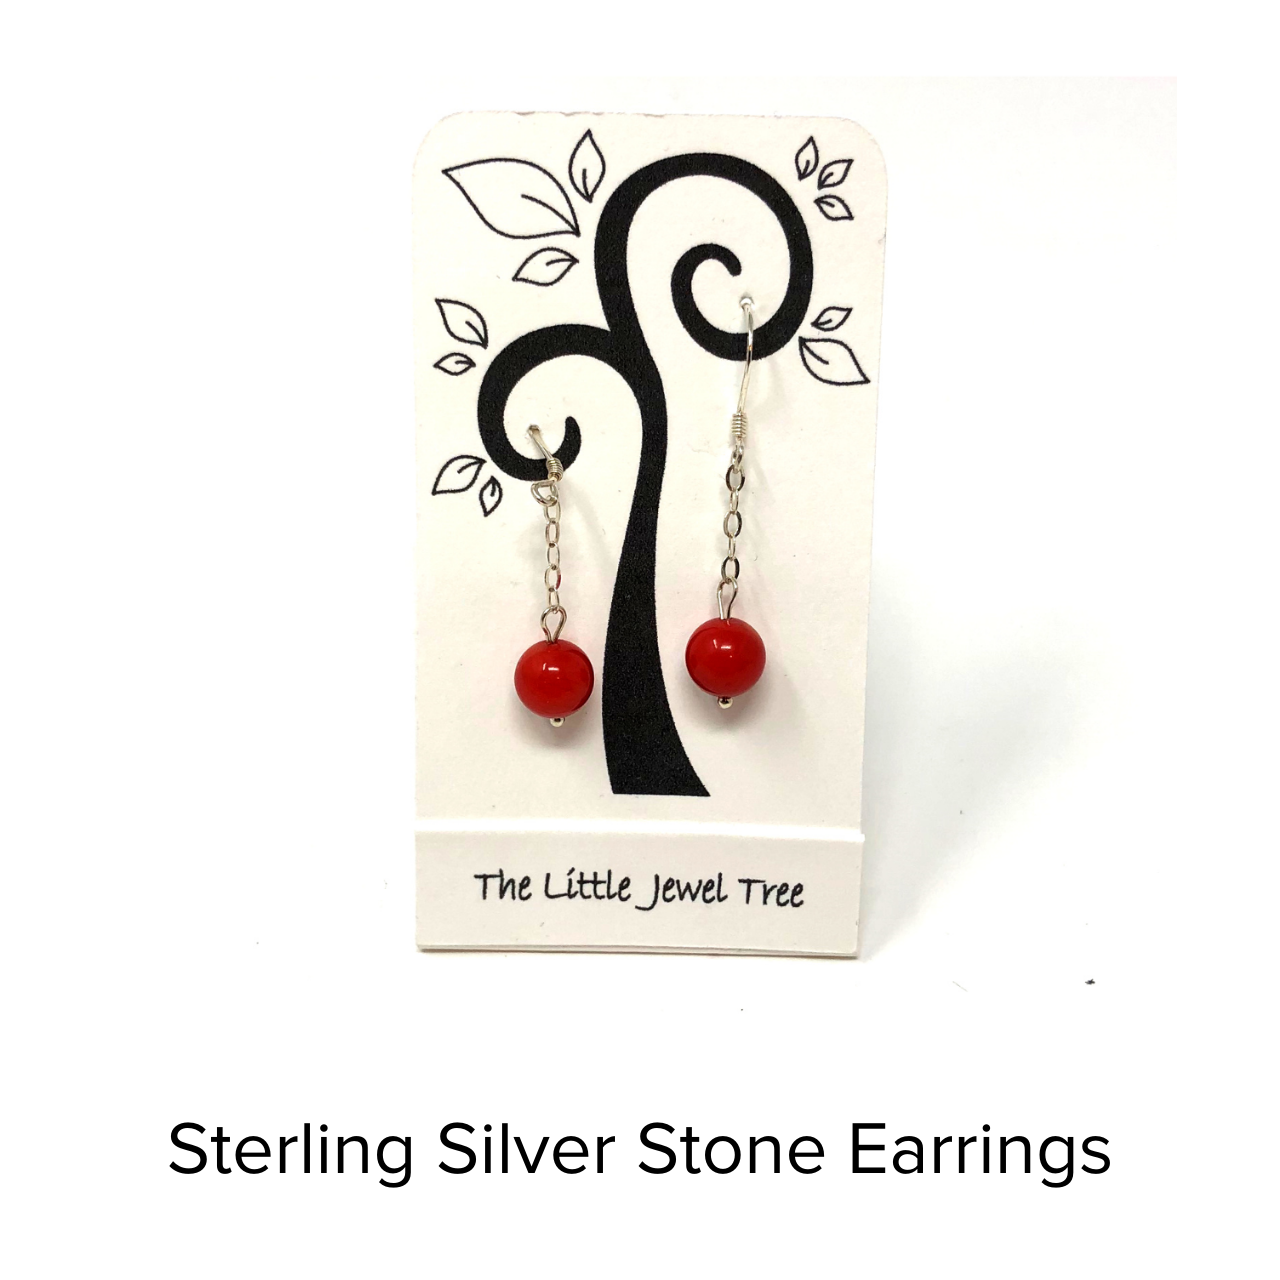 The Little Jewel Tree Chain and Stone Earrings